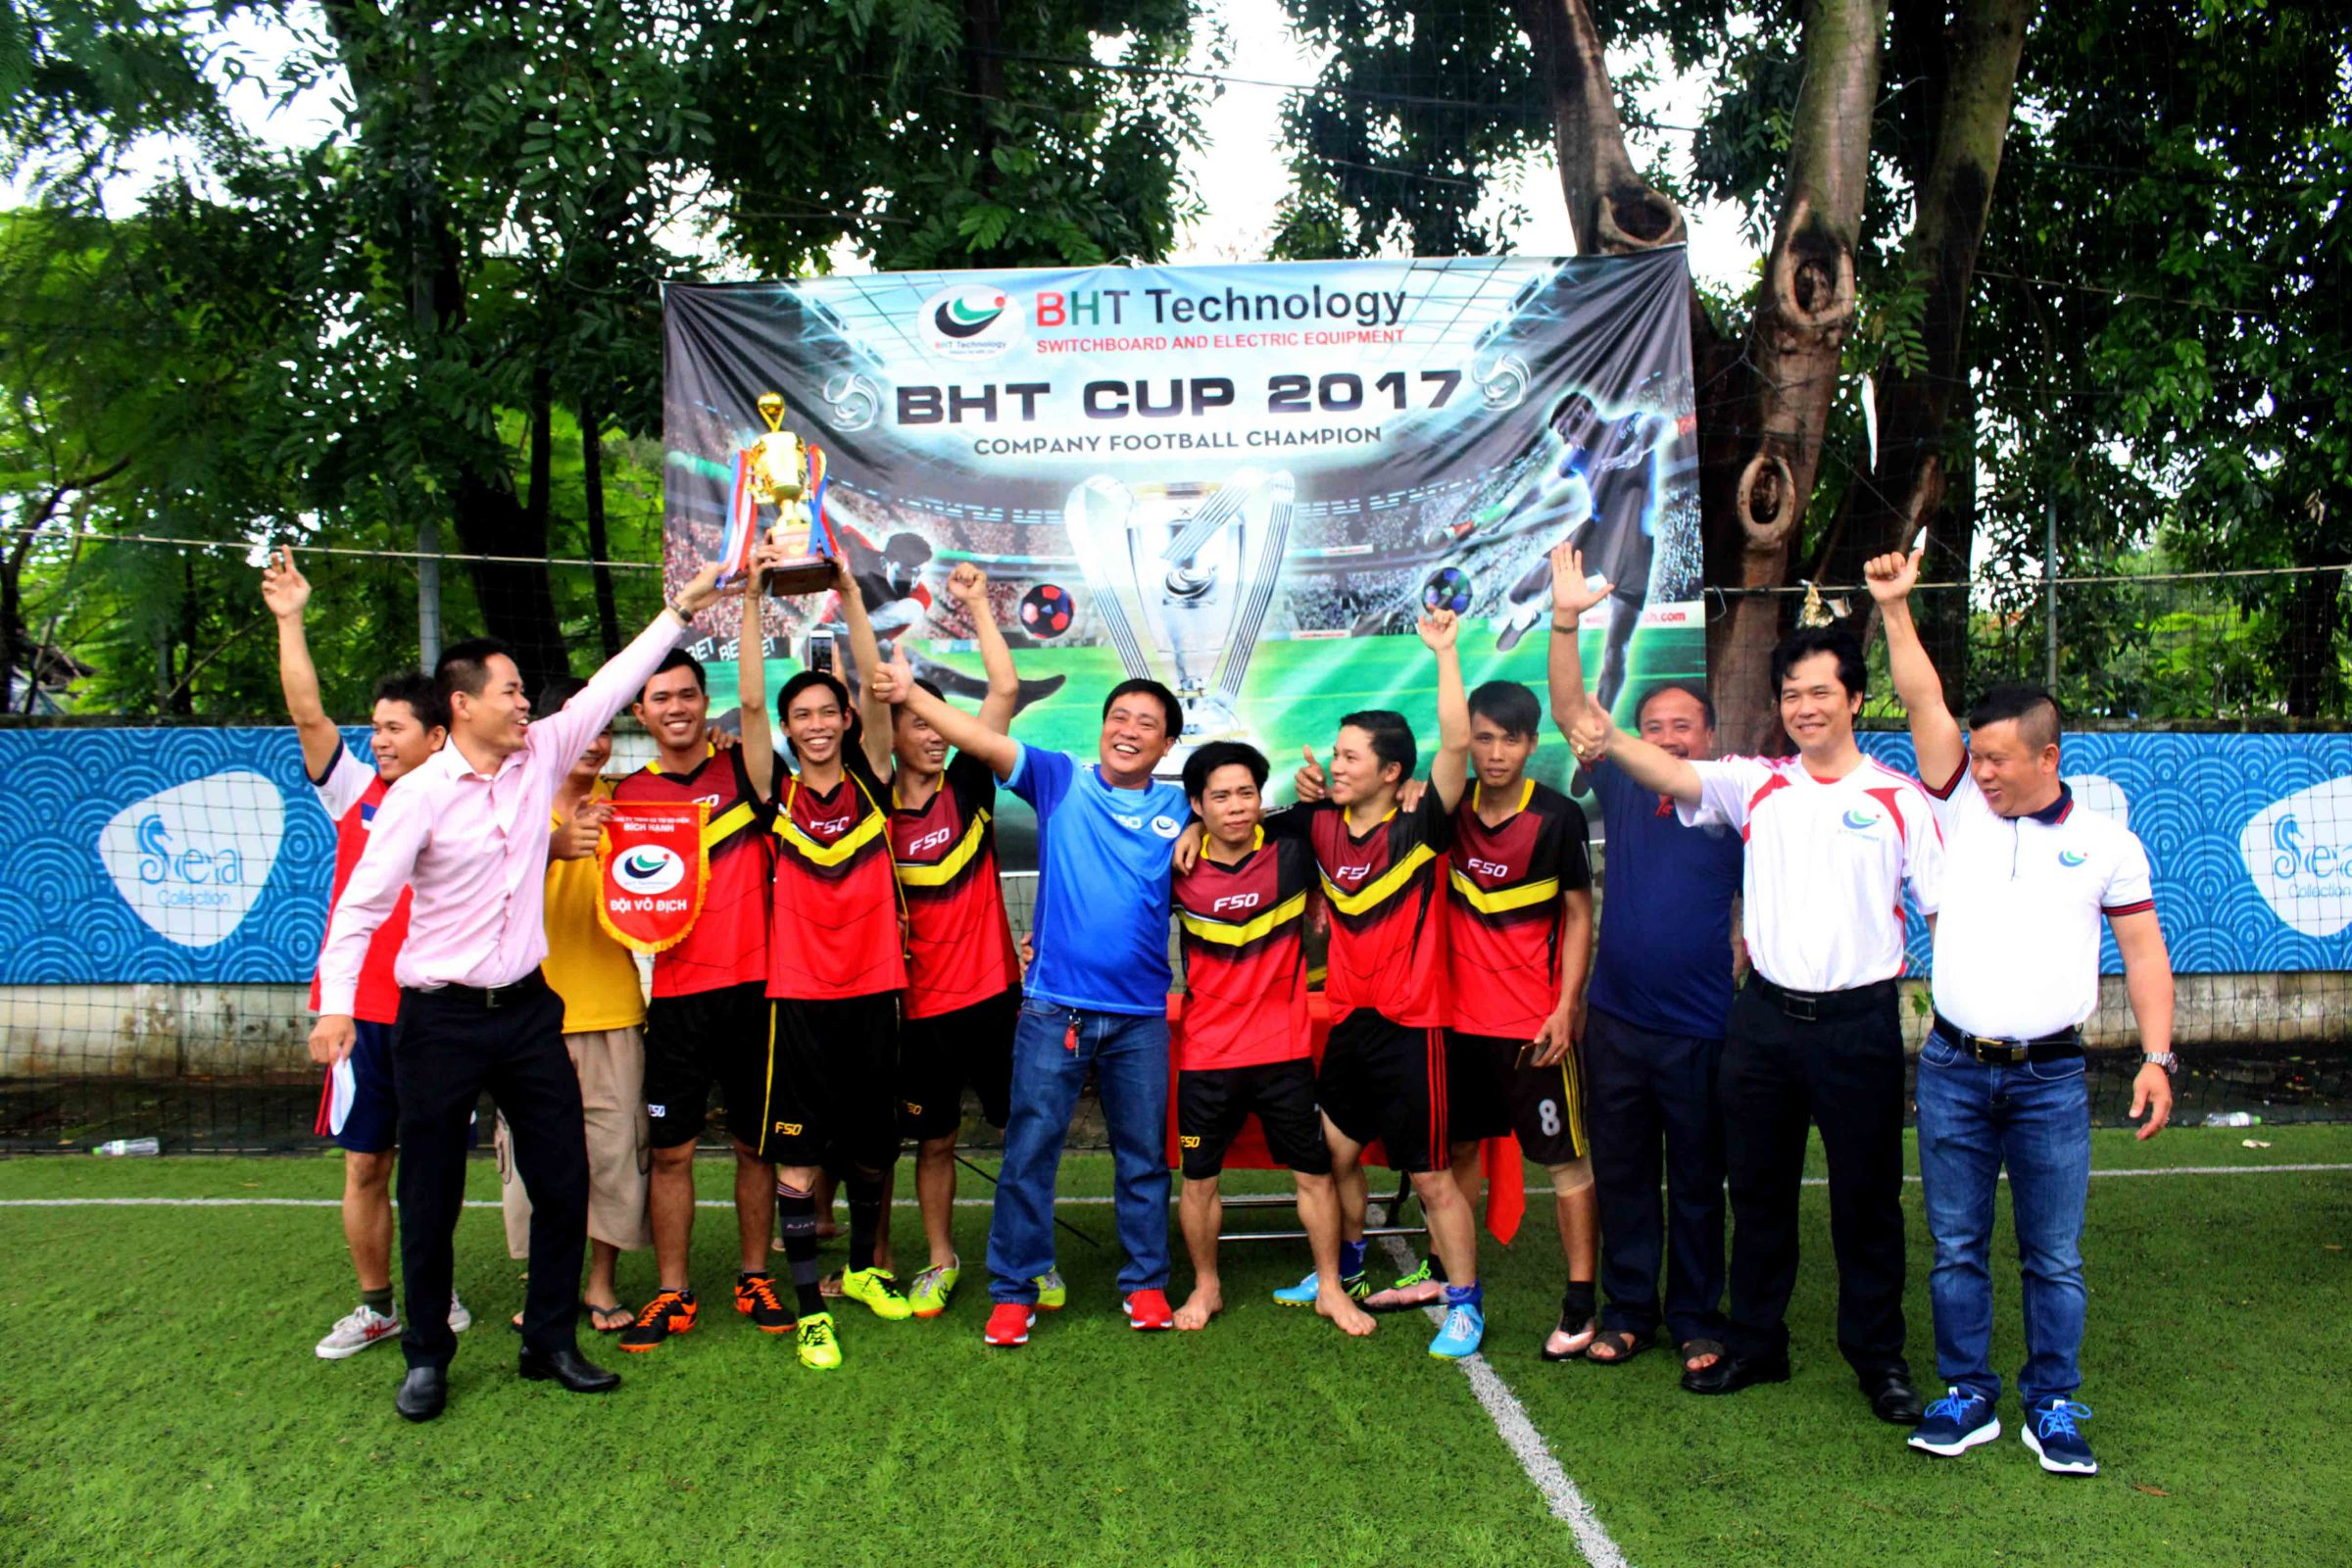 CLOSING CEREMONY FOOTBALL MATCH CUP BHT 2017